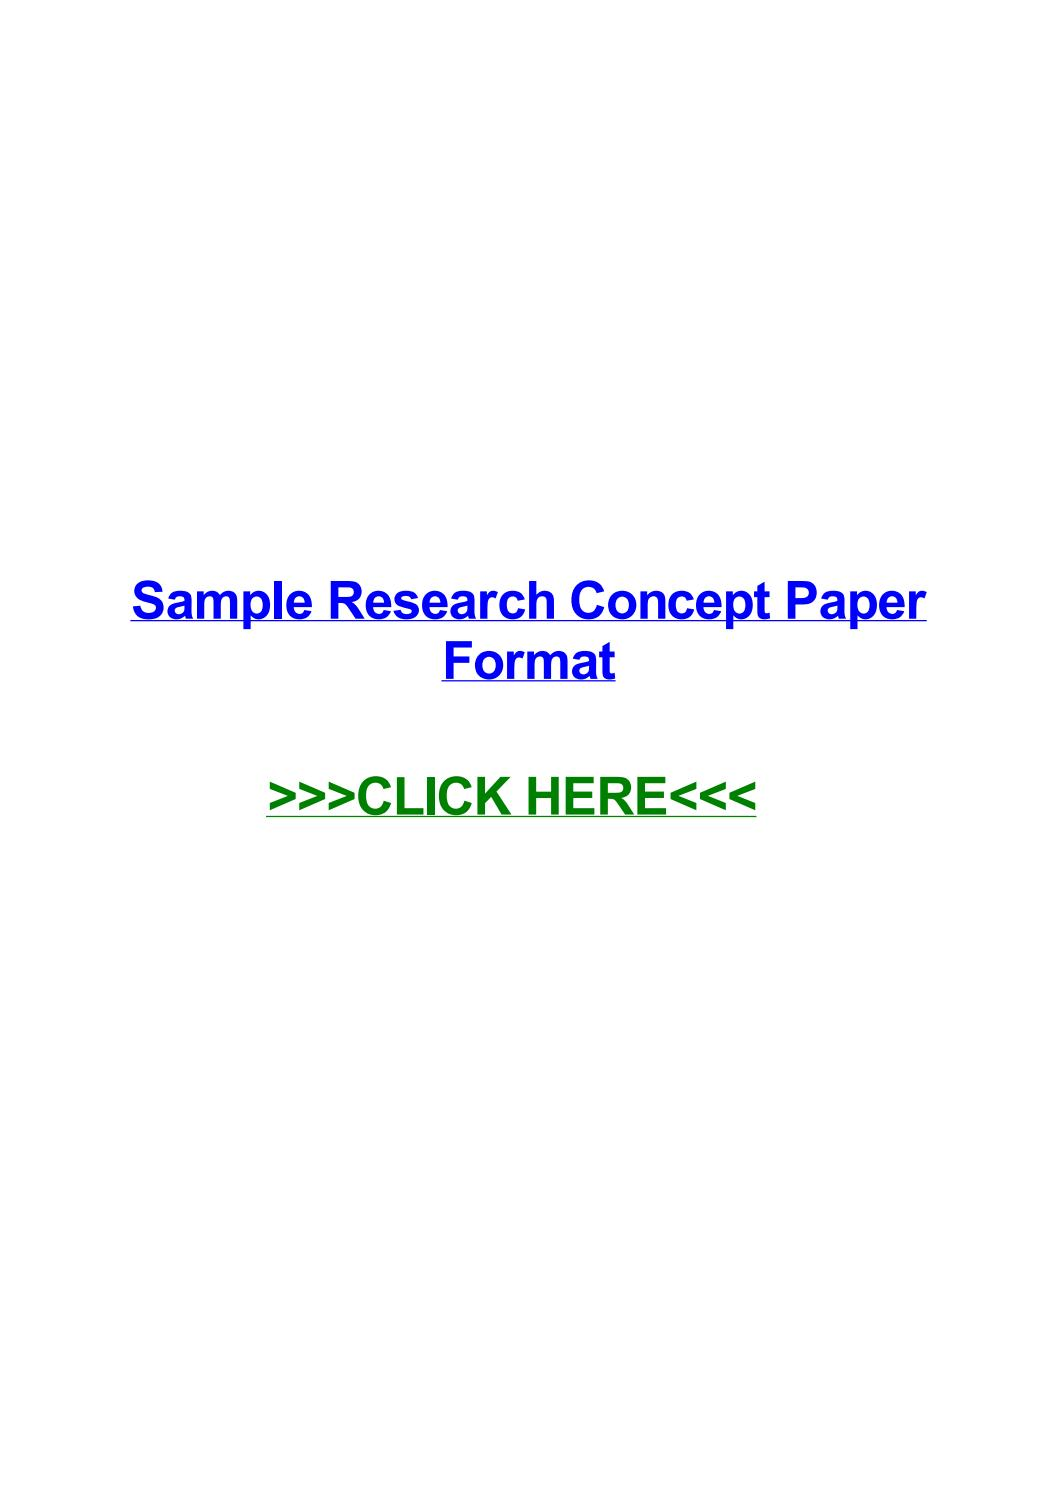 003 Page 1 Sample Research Concept Wondrous A Paper Of Pdf Phd Full